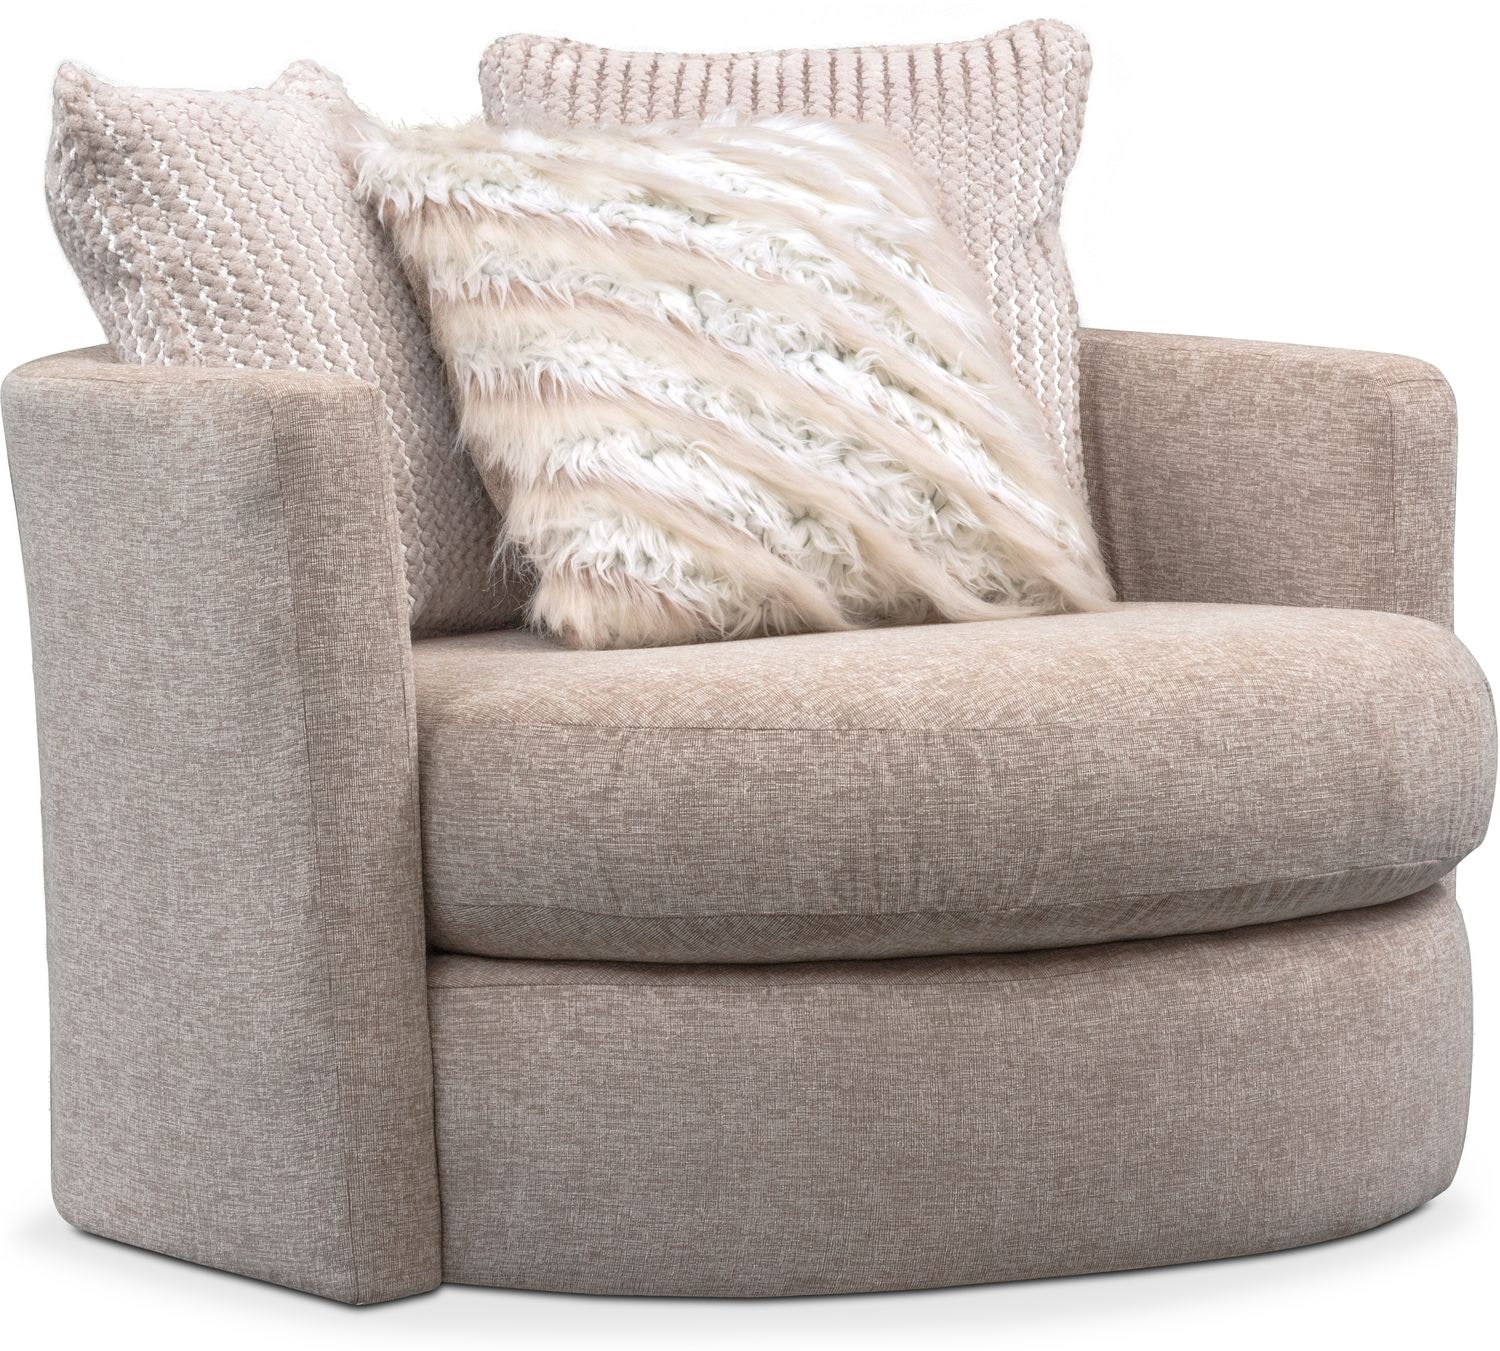 marvellous living room swivel chairs | Allure Swivel Chair - Beige | American Signature Furniture